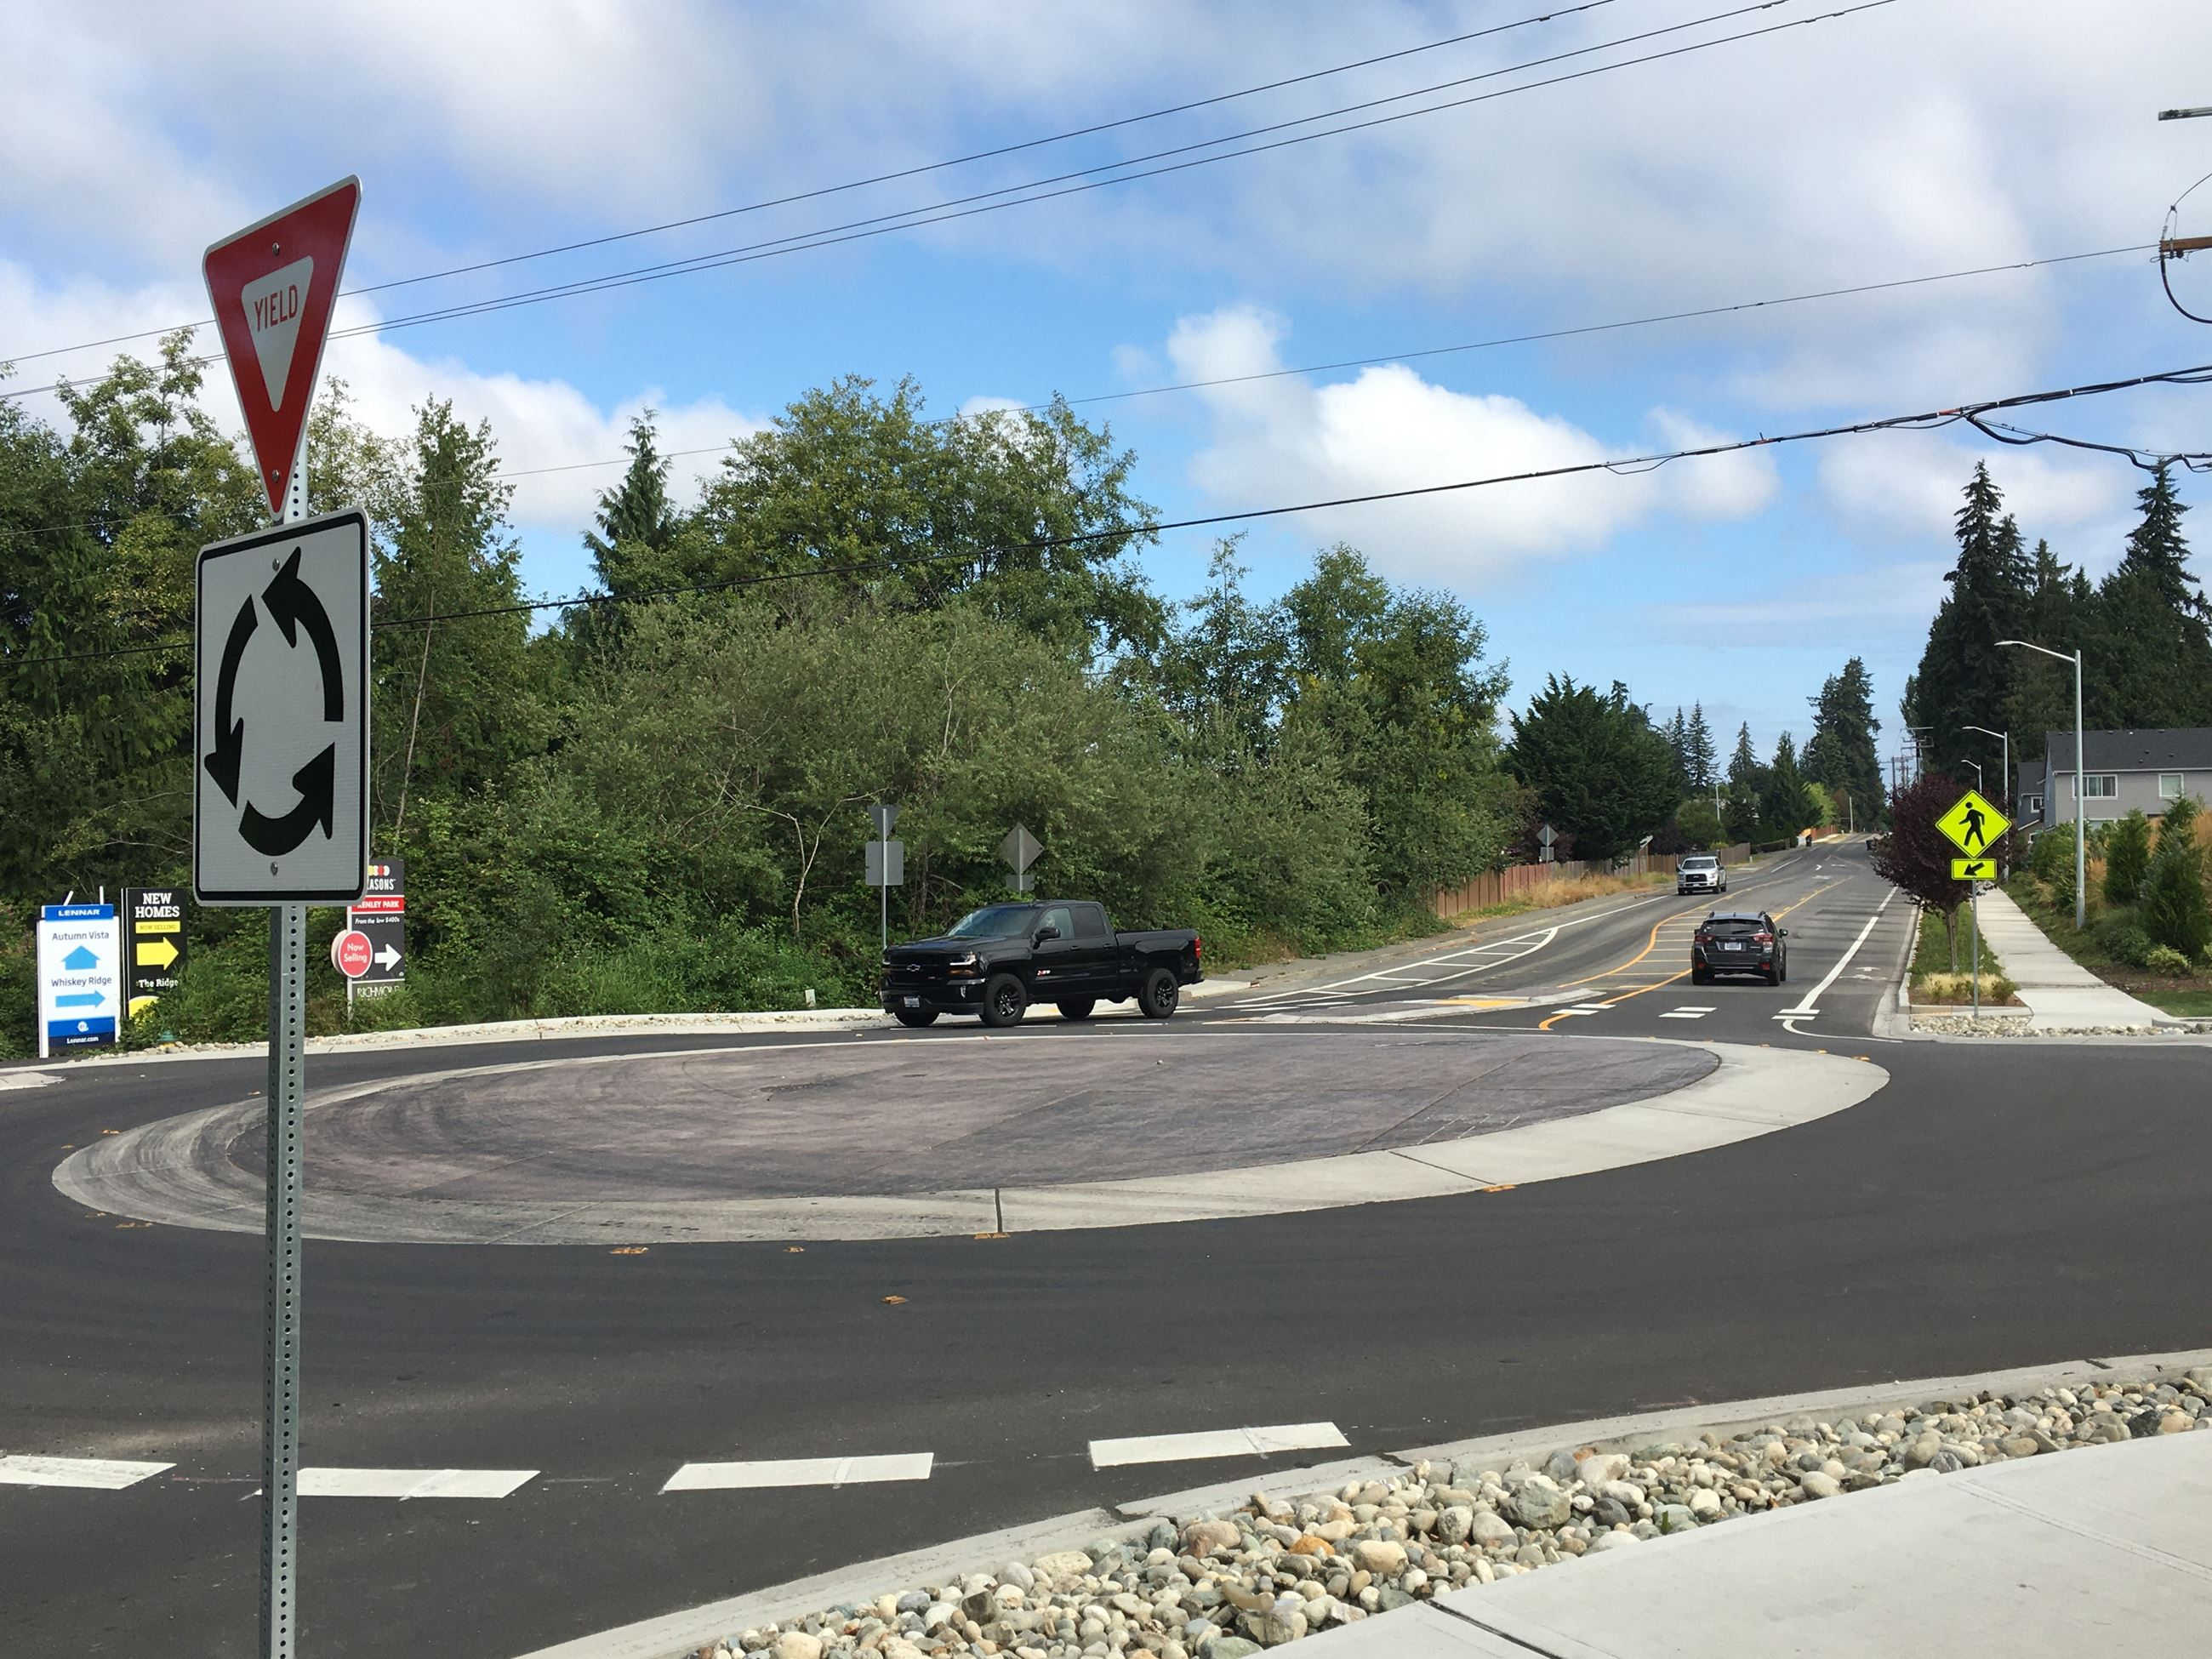 Traffic roundabout at Soper Hill Rd & 83rd Ave NE